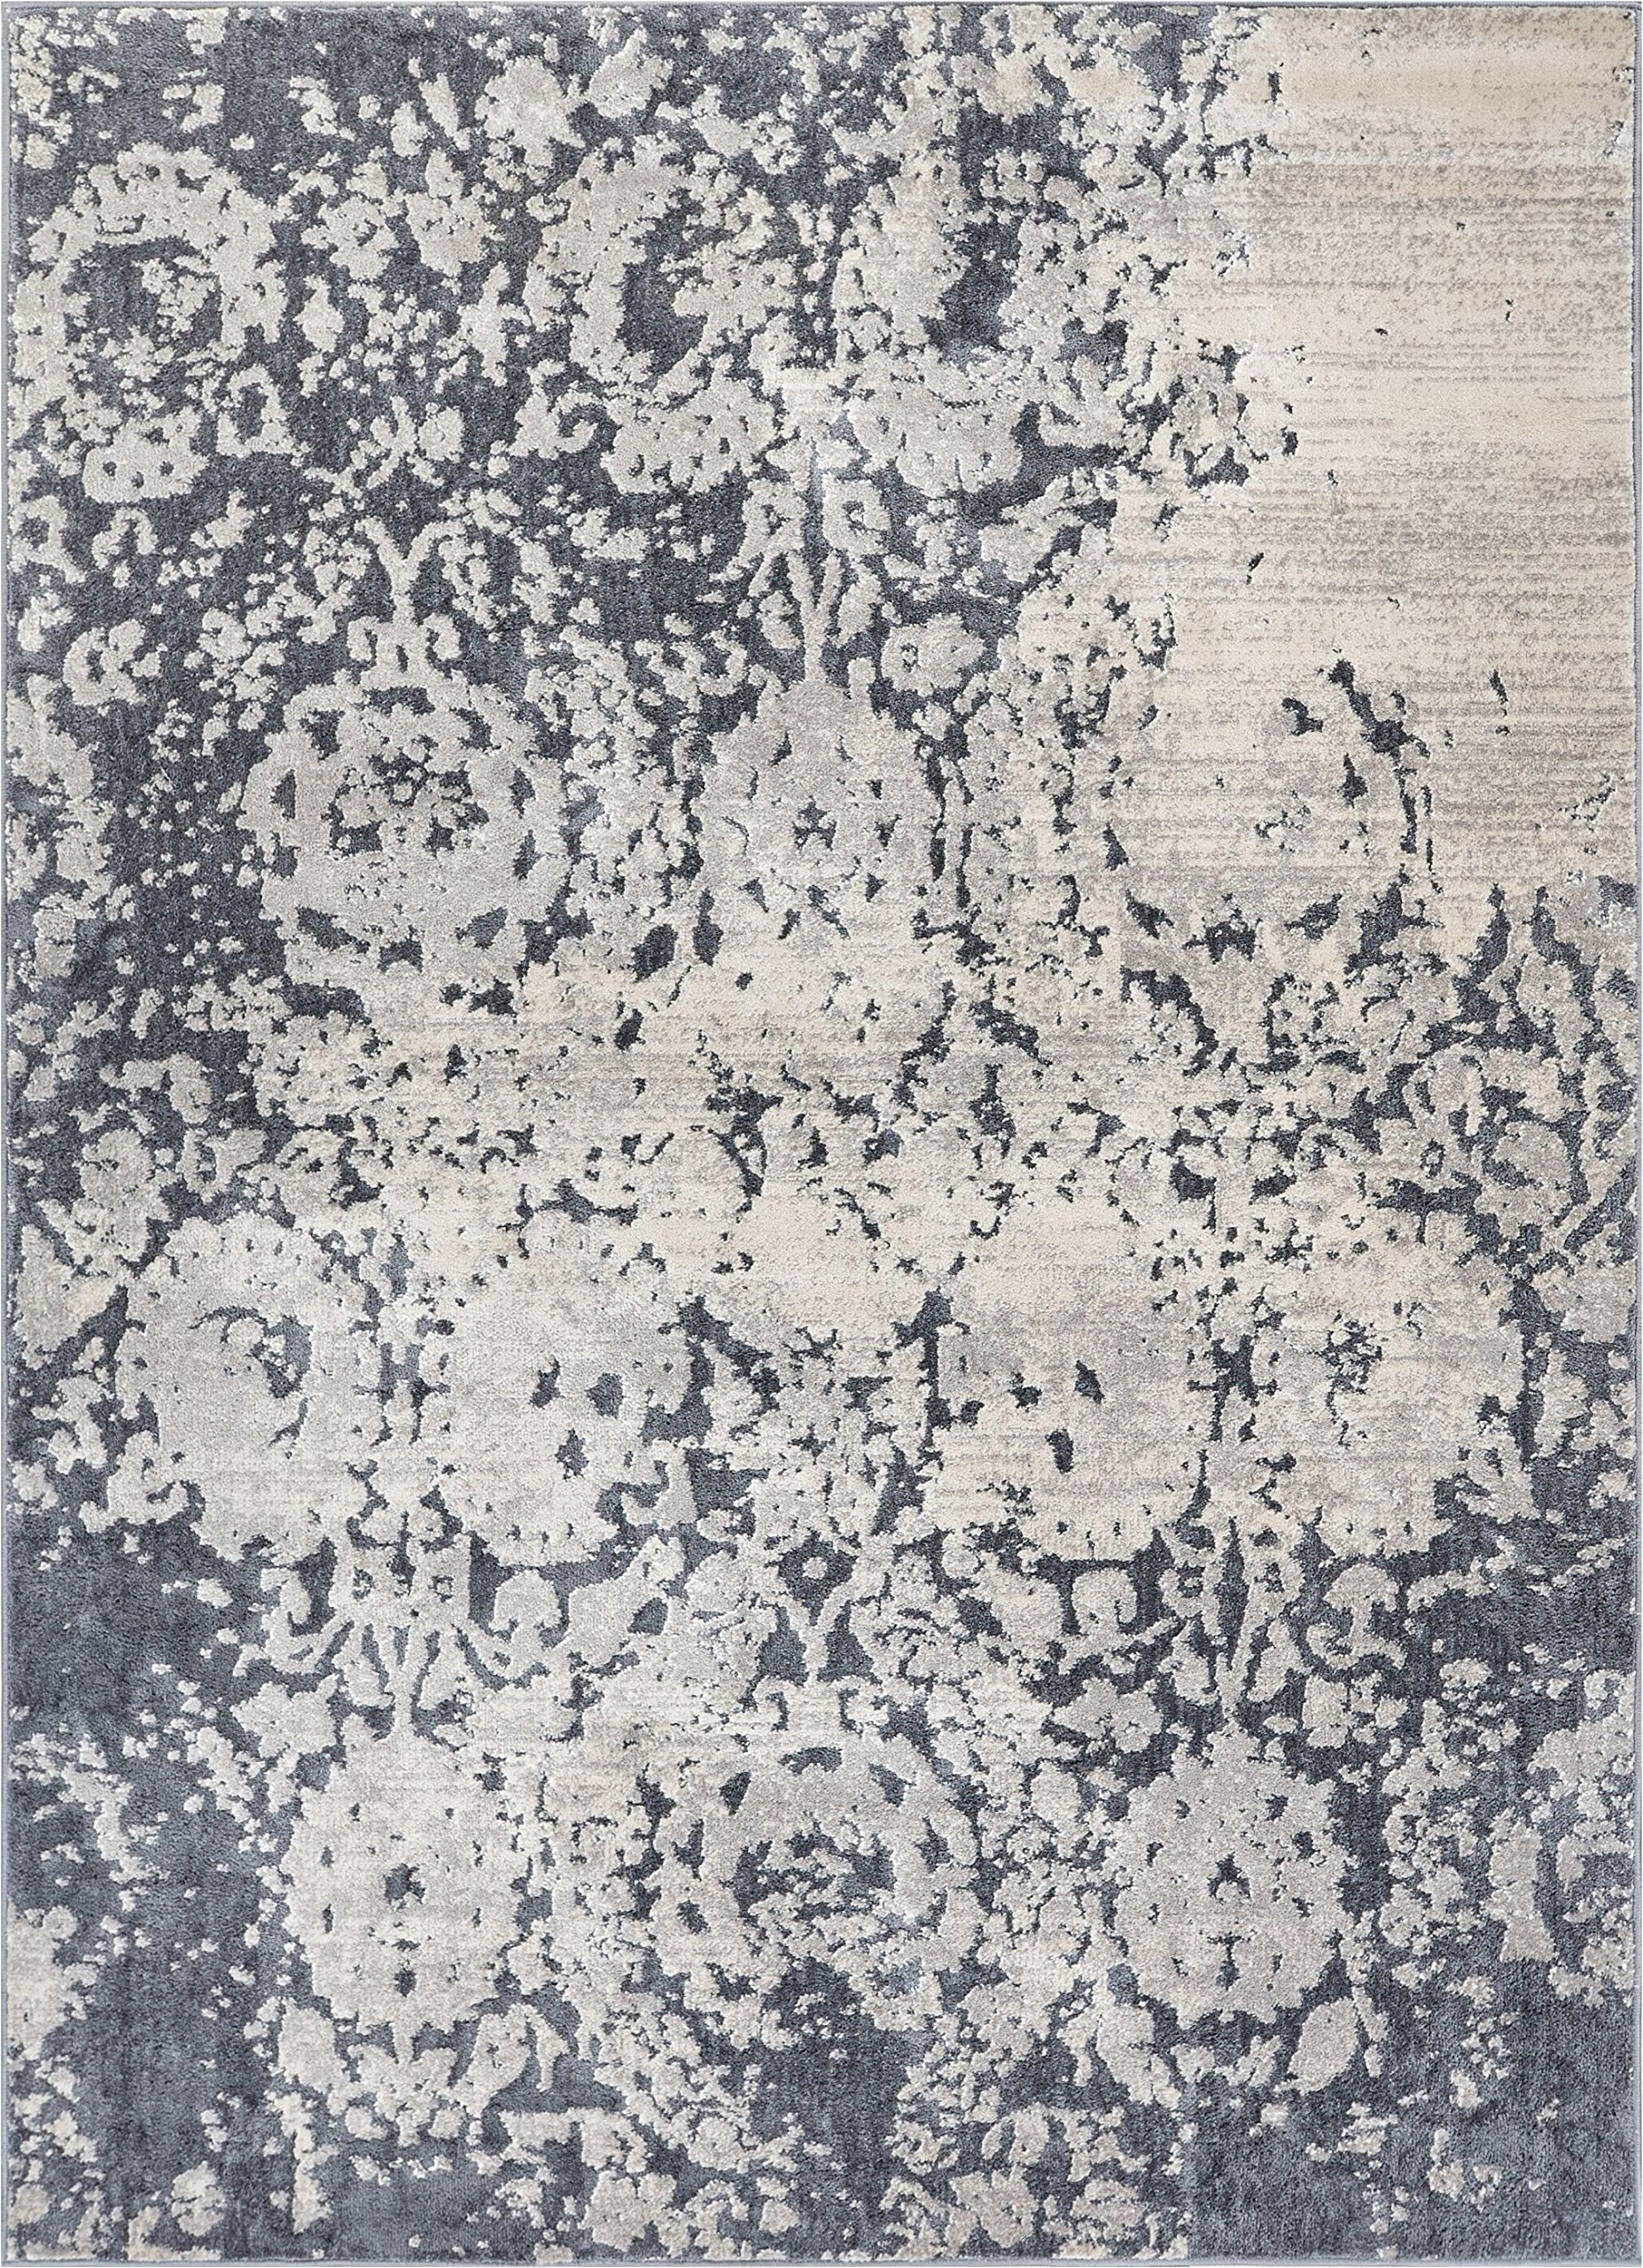 Forte Grey Microfiber High-Low Pile Vintage Abstract Erased Floral 8x10 (7'10'' x 9'10'') Area Rug Modern Oriental Carpet by Well Woven (Image #2)